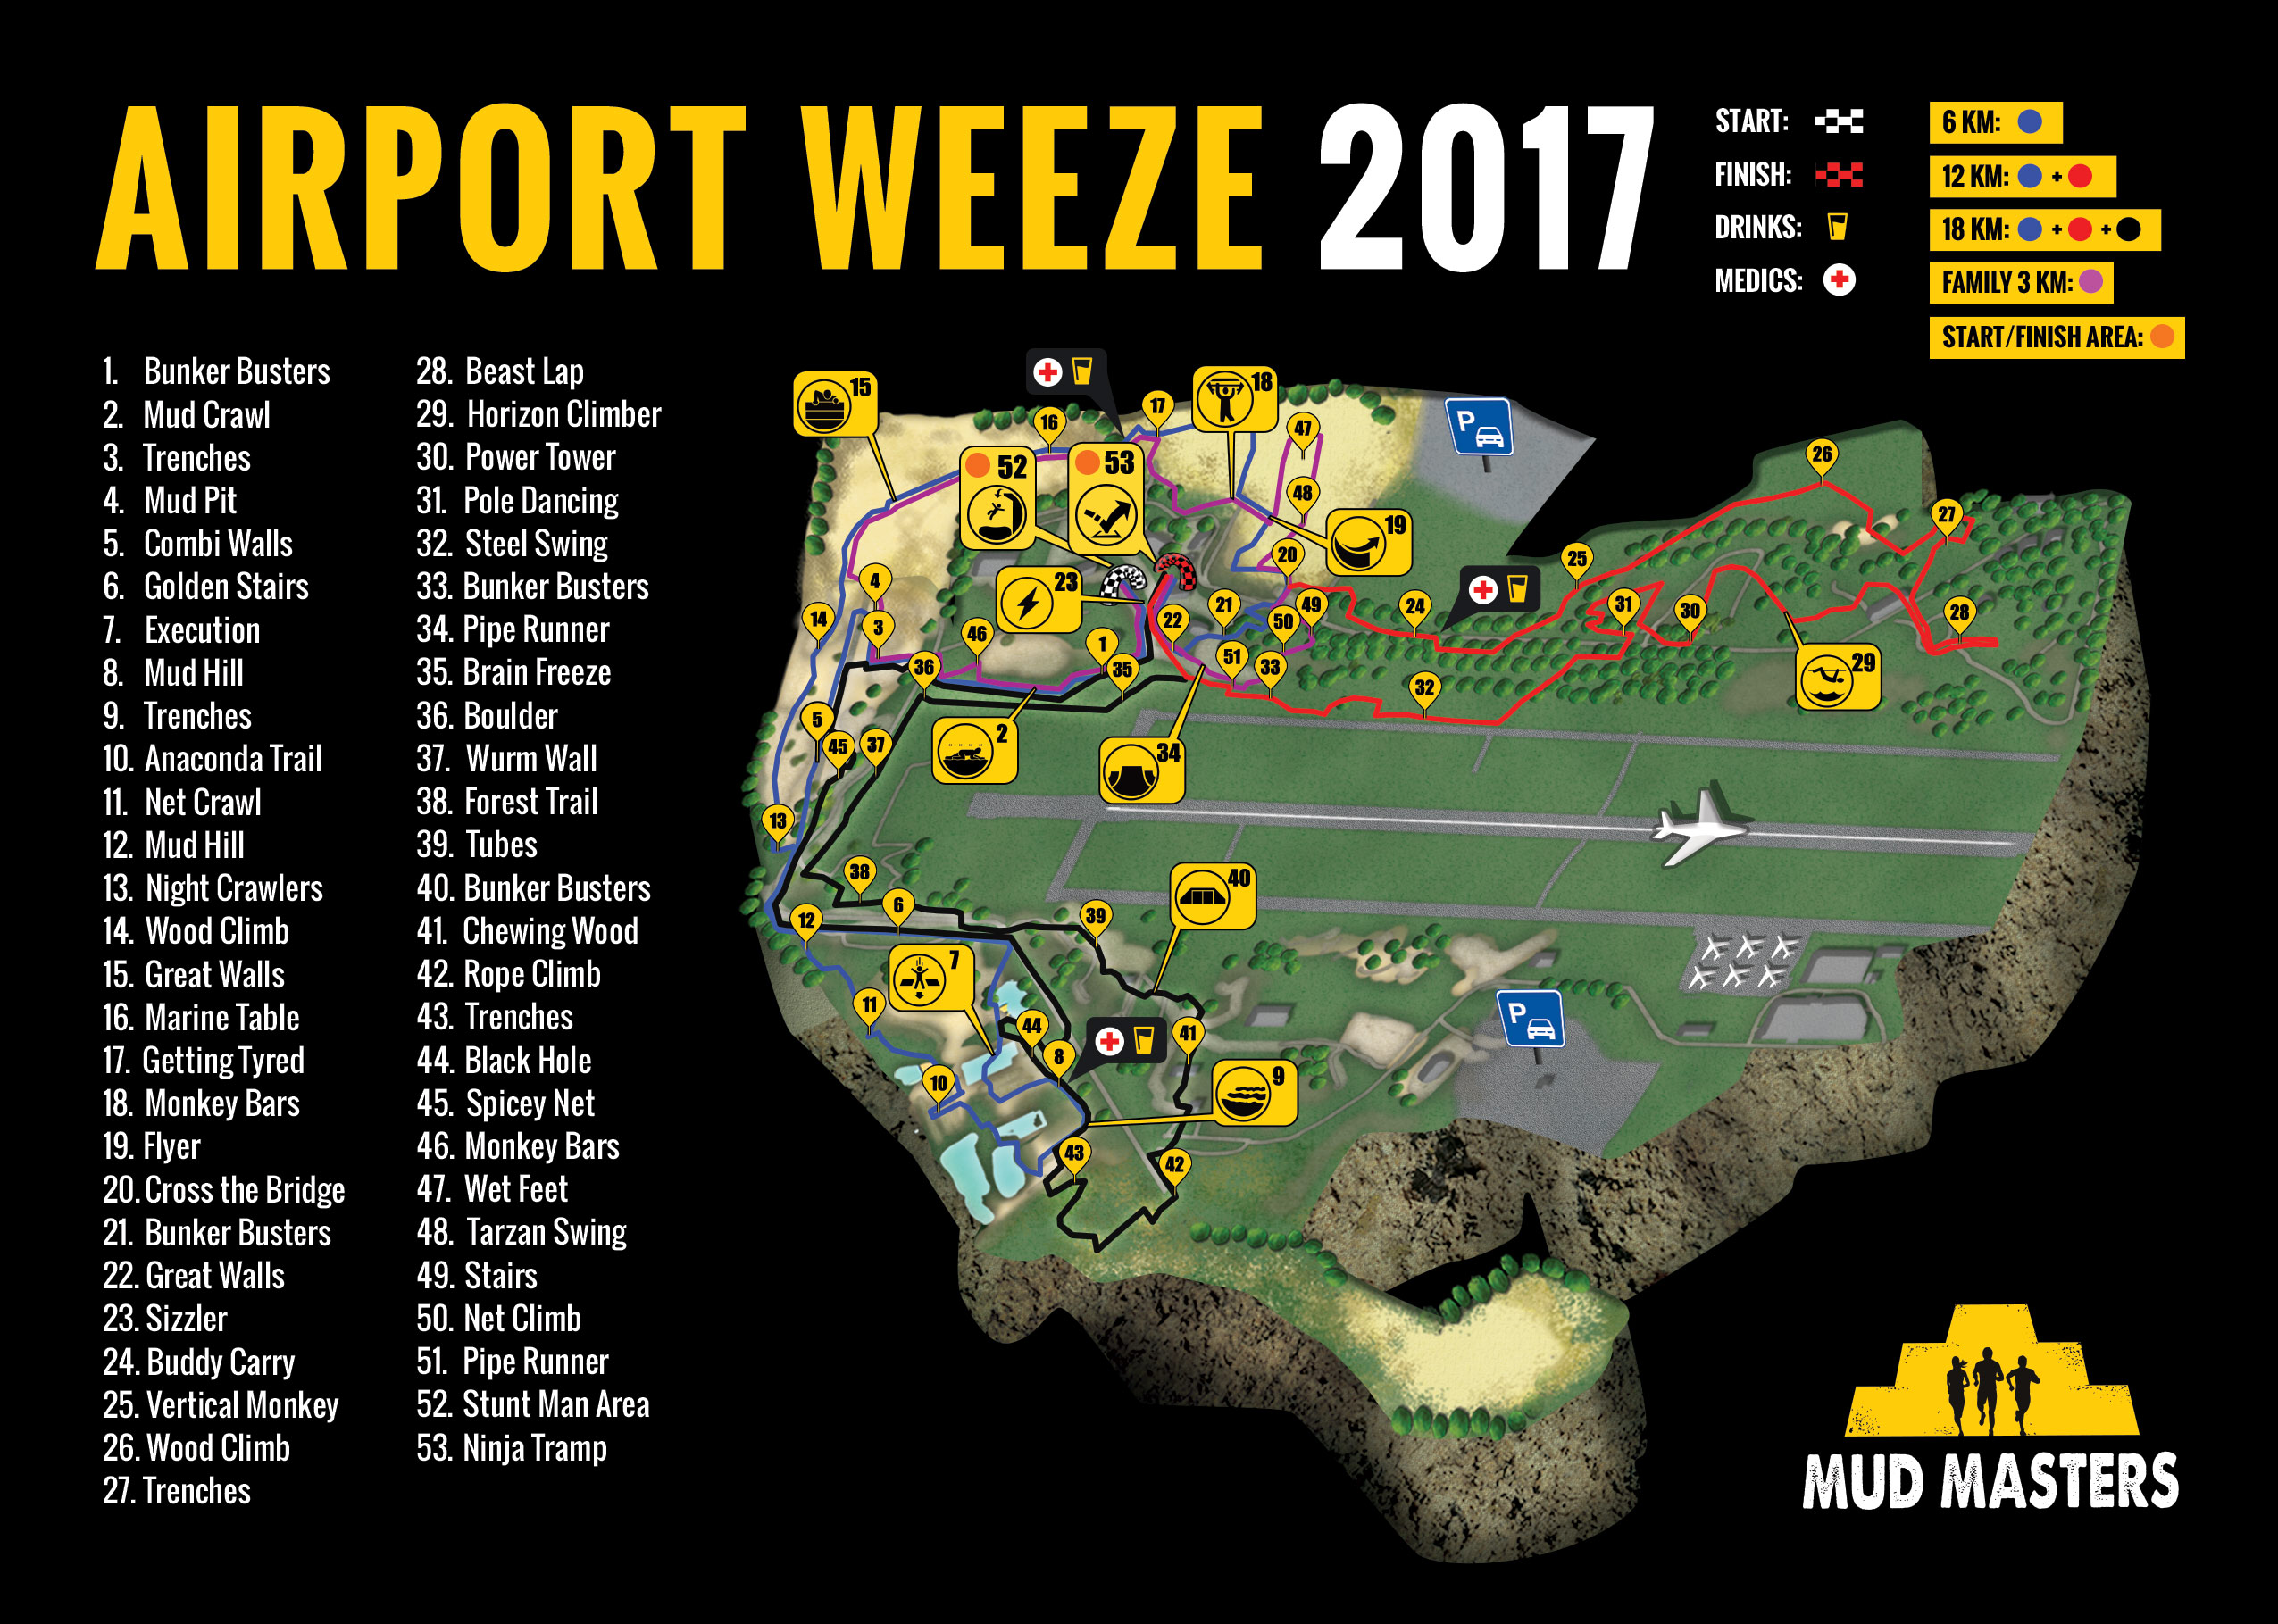 Airport Weeze 2017 - Mud Masters Obstacle Run